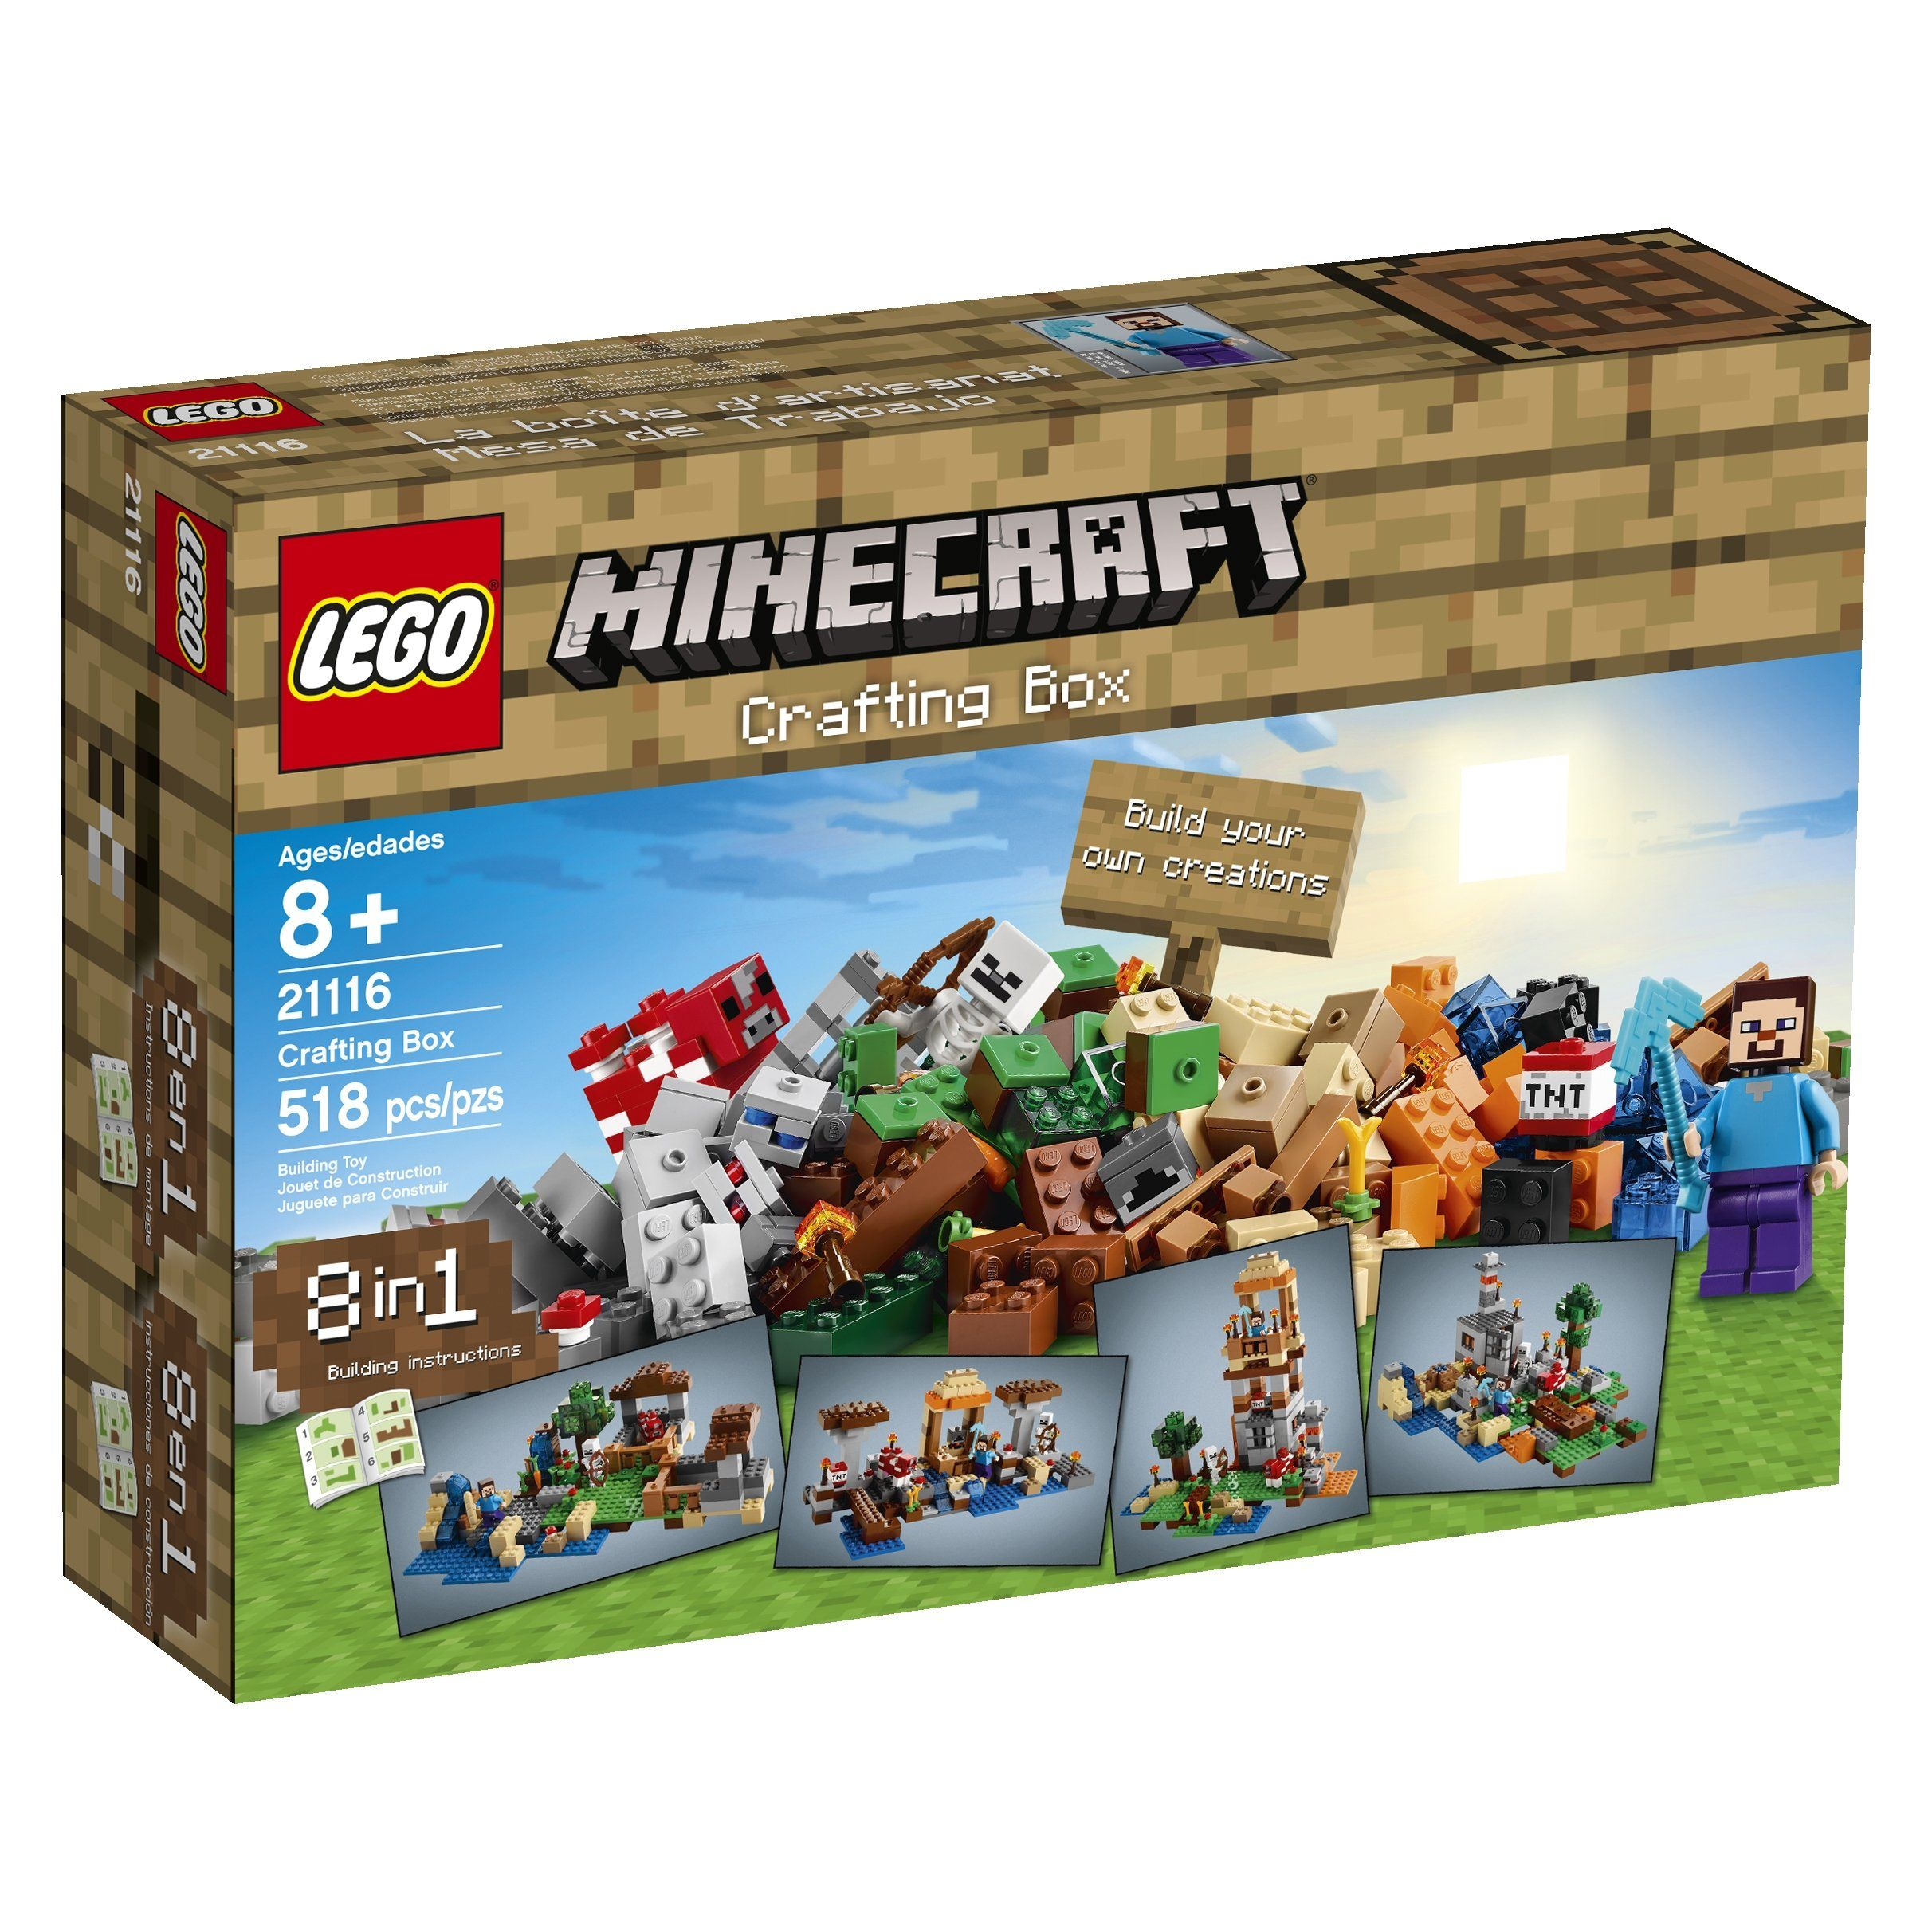 Lego Minecraft 21116 Crafting Box I Think This Would Be Great For Me To Have Rowan With Images Lego Minecraft Minecraft Crafts Craft Box